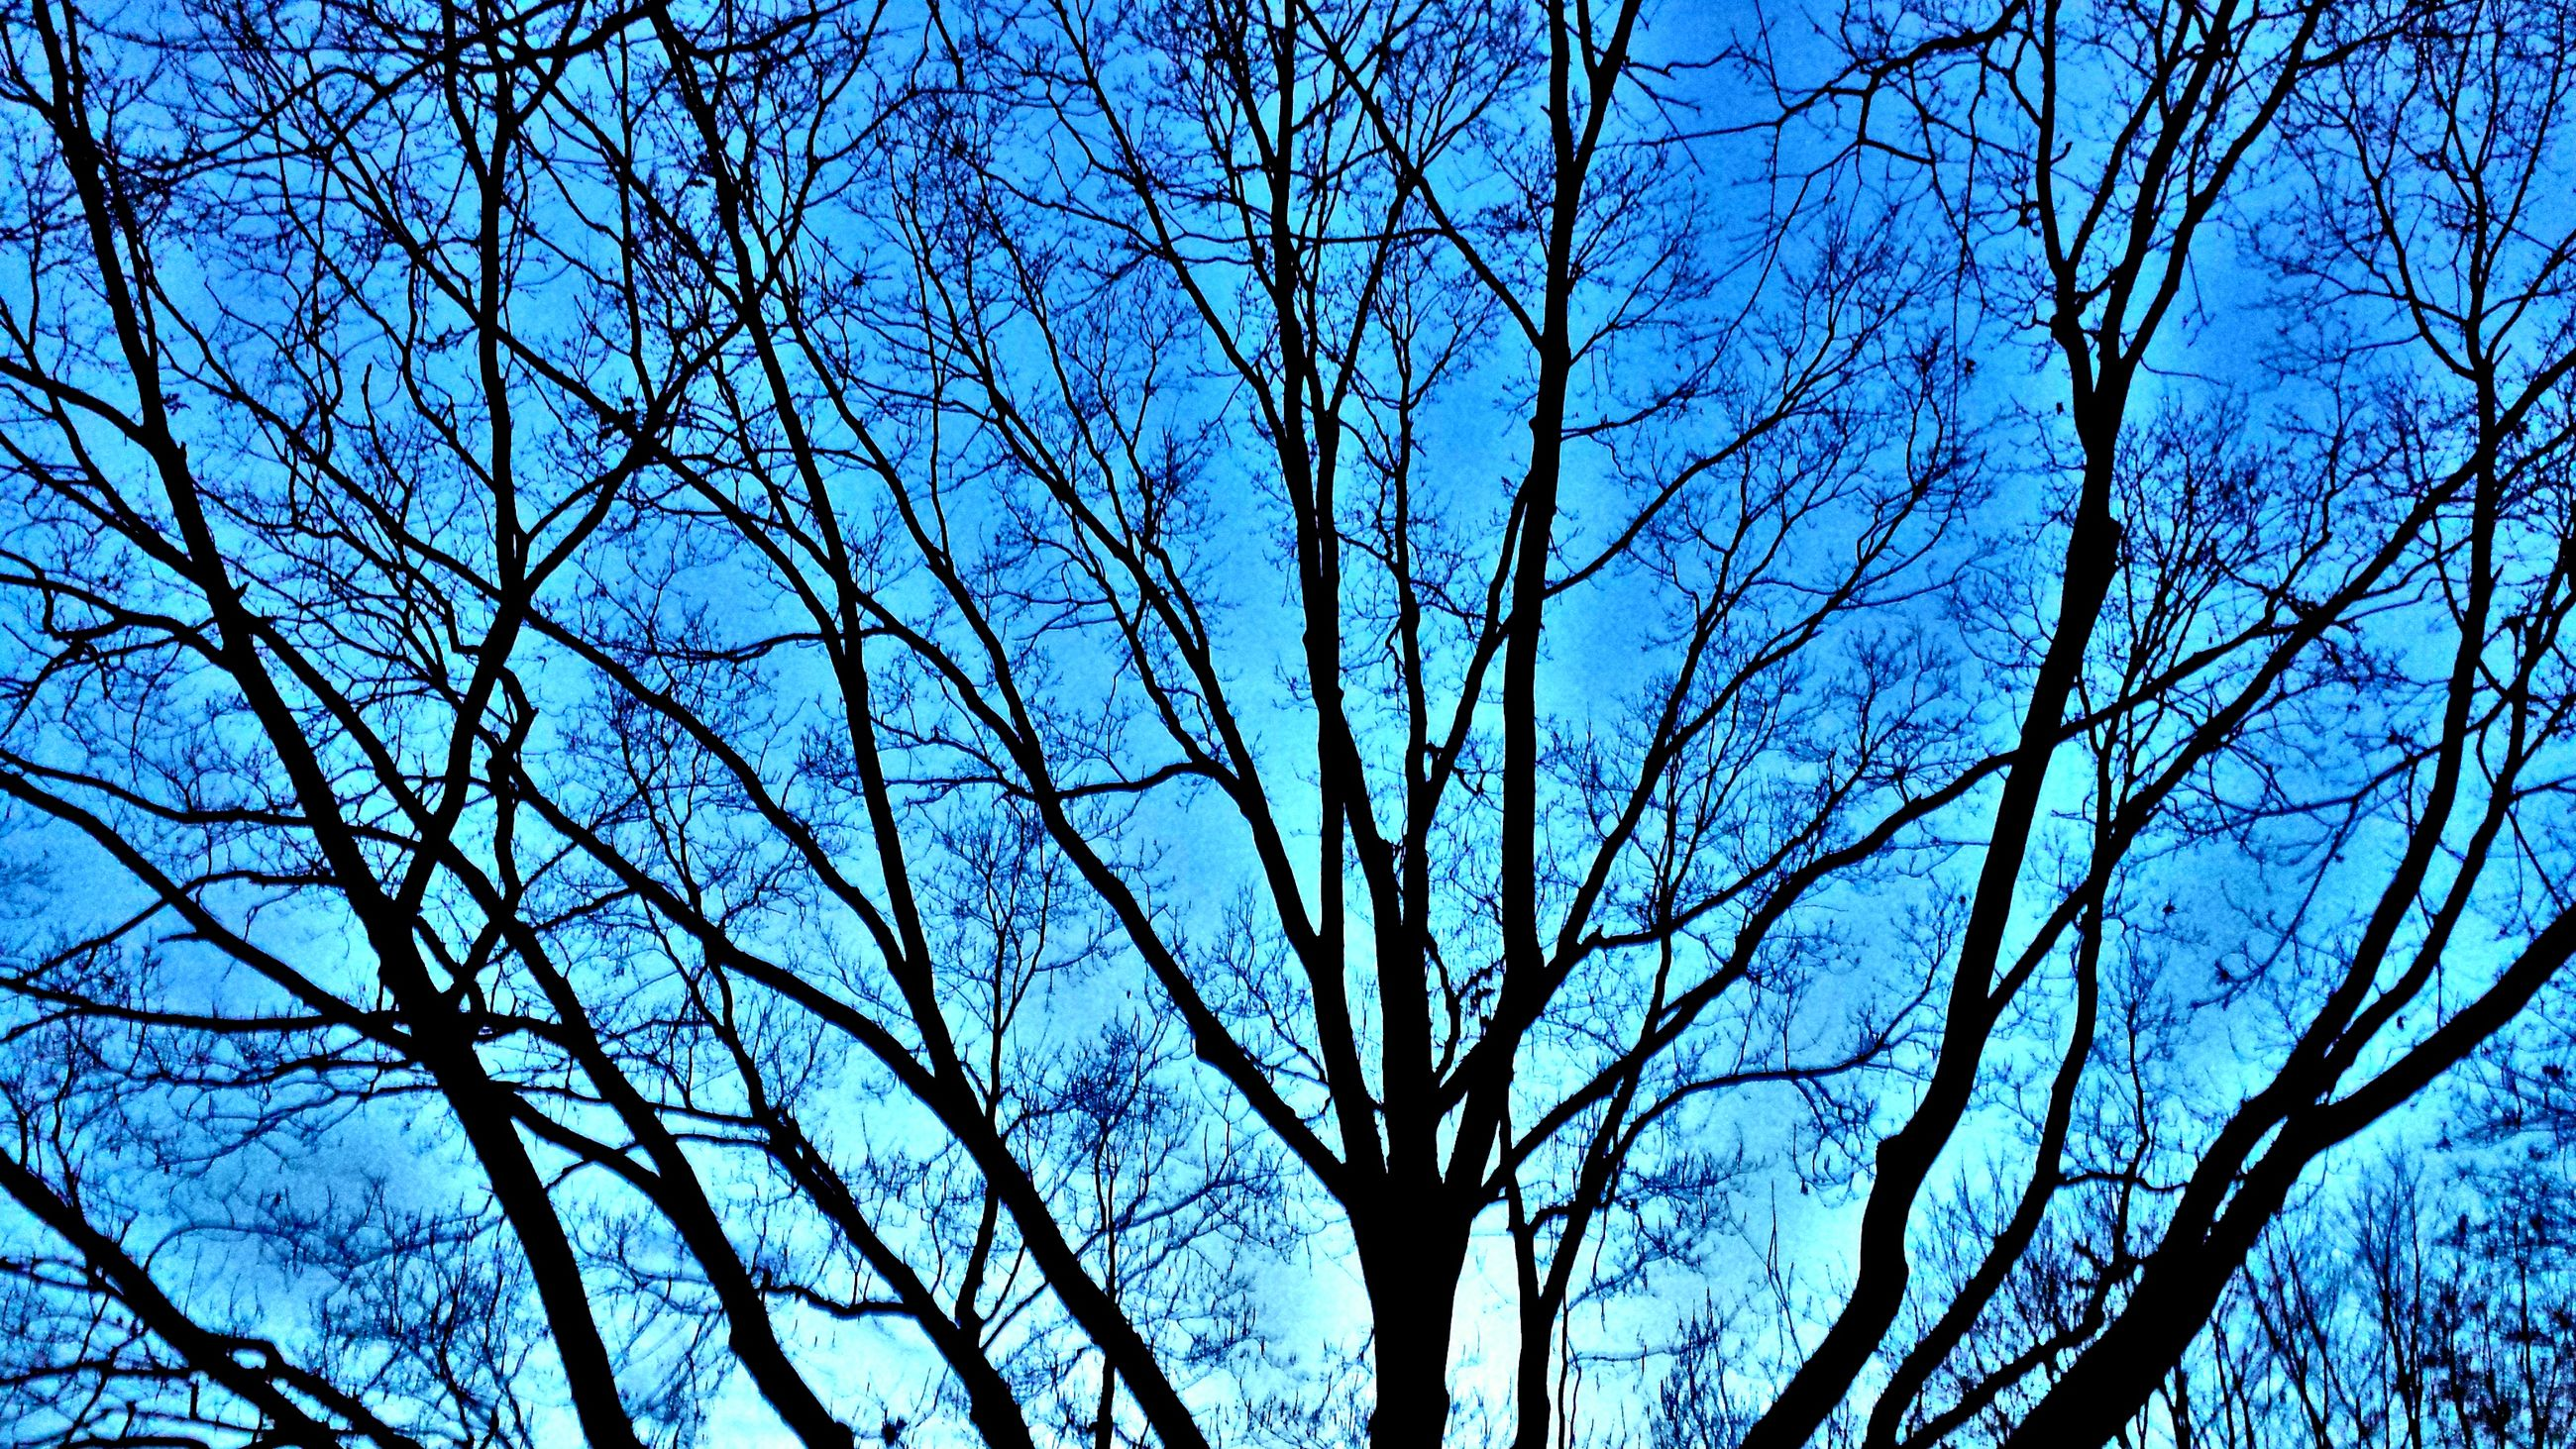 tree, low angle view, nature, sky, growth, branch, no people, outdoors, beauty in nature, tranquility, bare tree, day